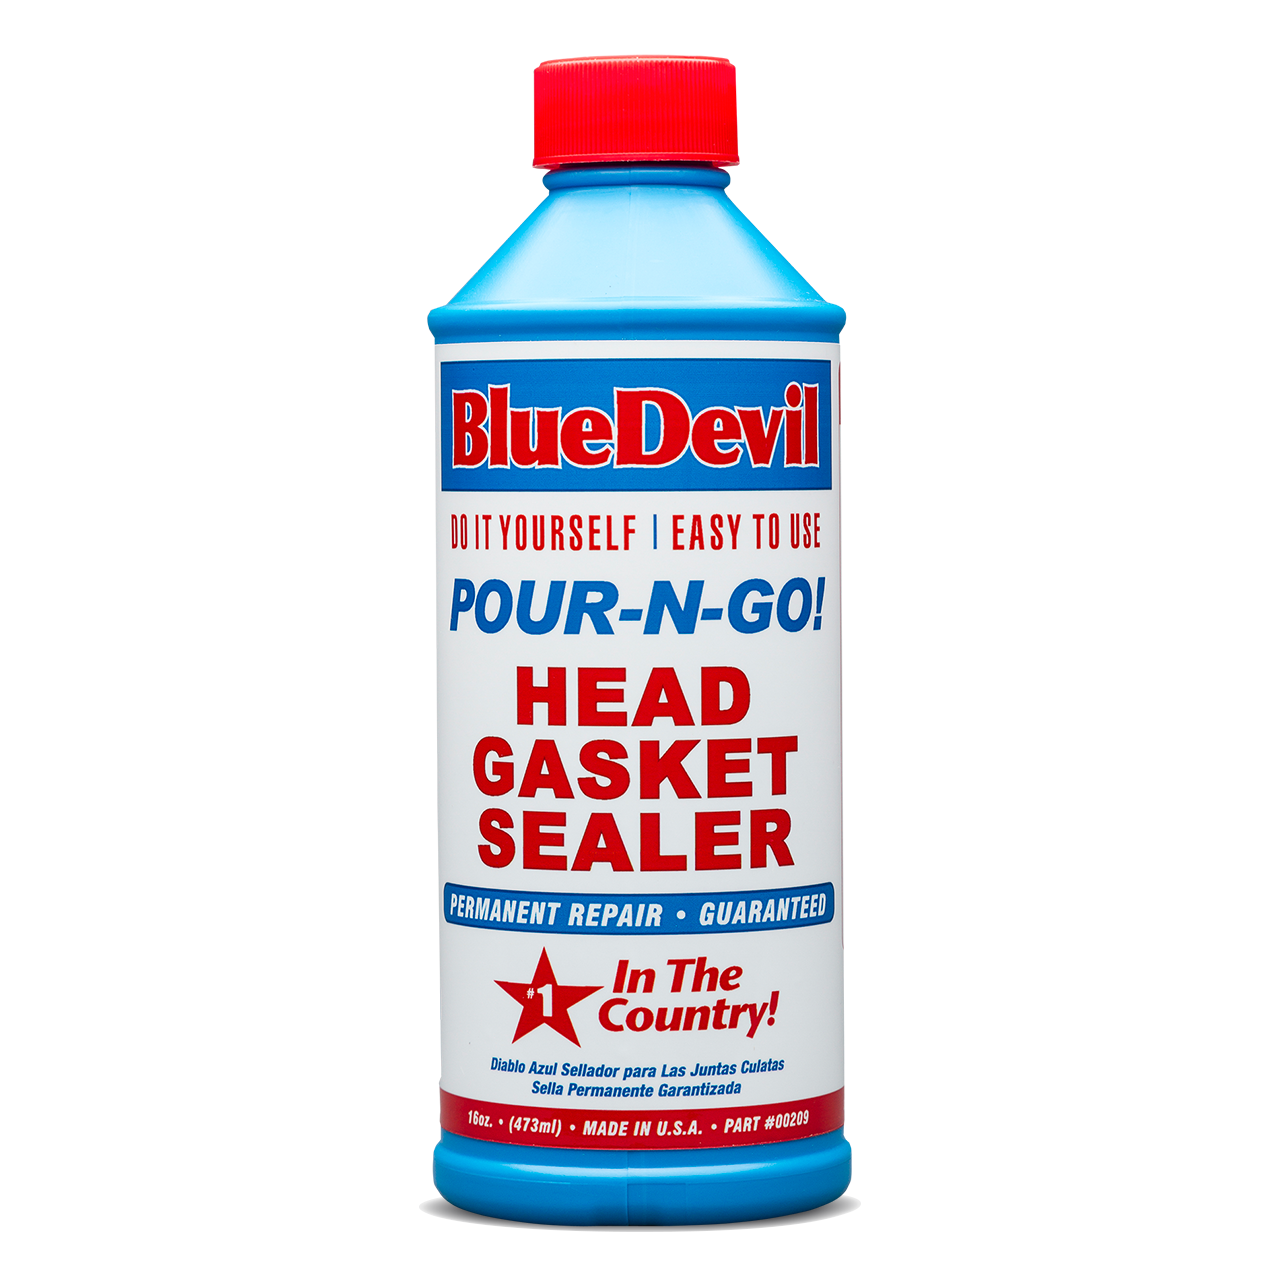 BlueDevil Head Gasket Sealer | Pour-N-Go